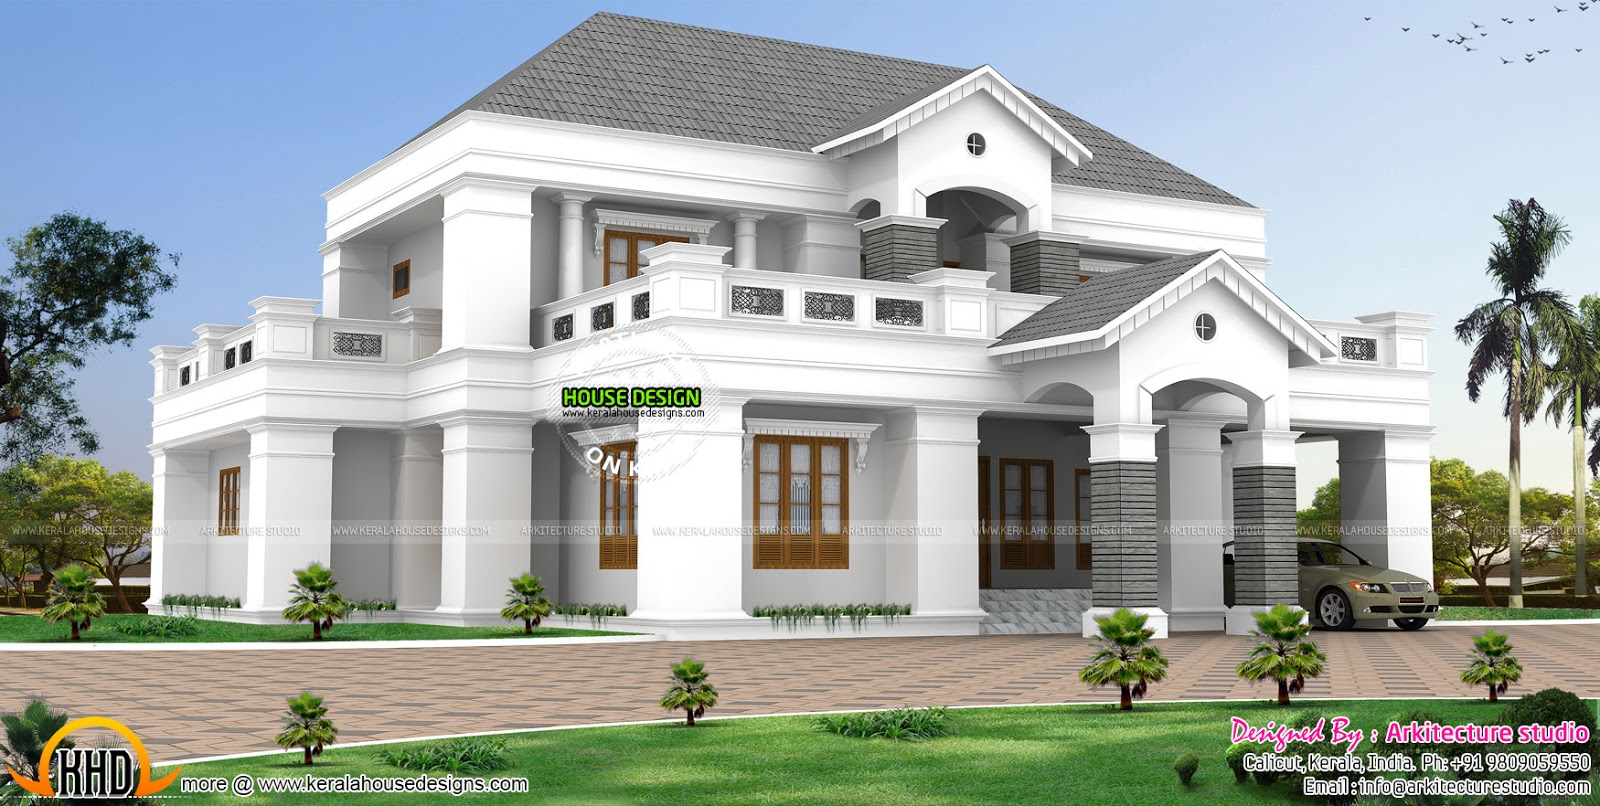 Luxurious pillar type home design kerala home design and for House by design